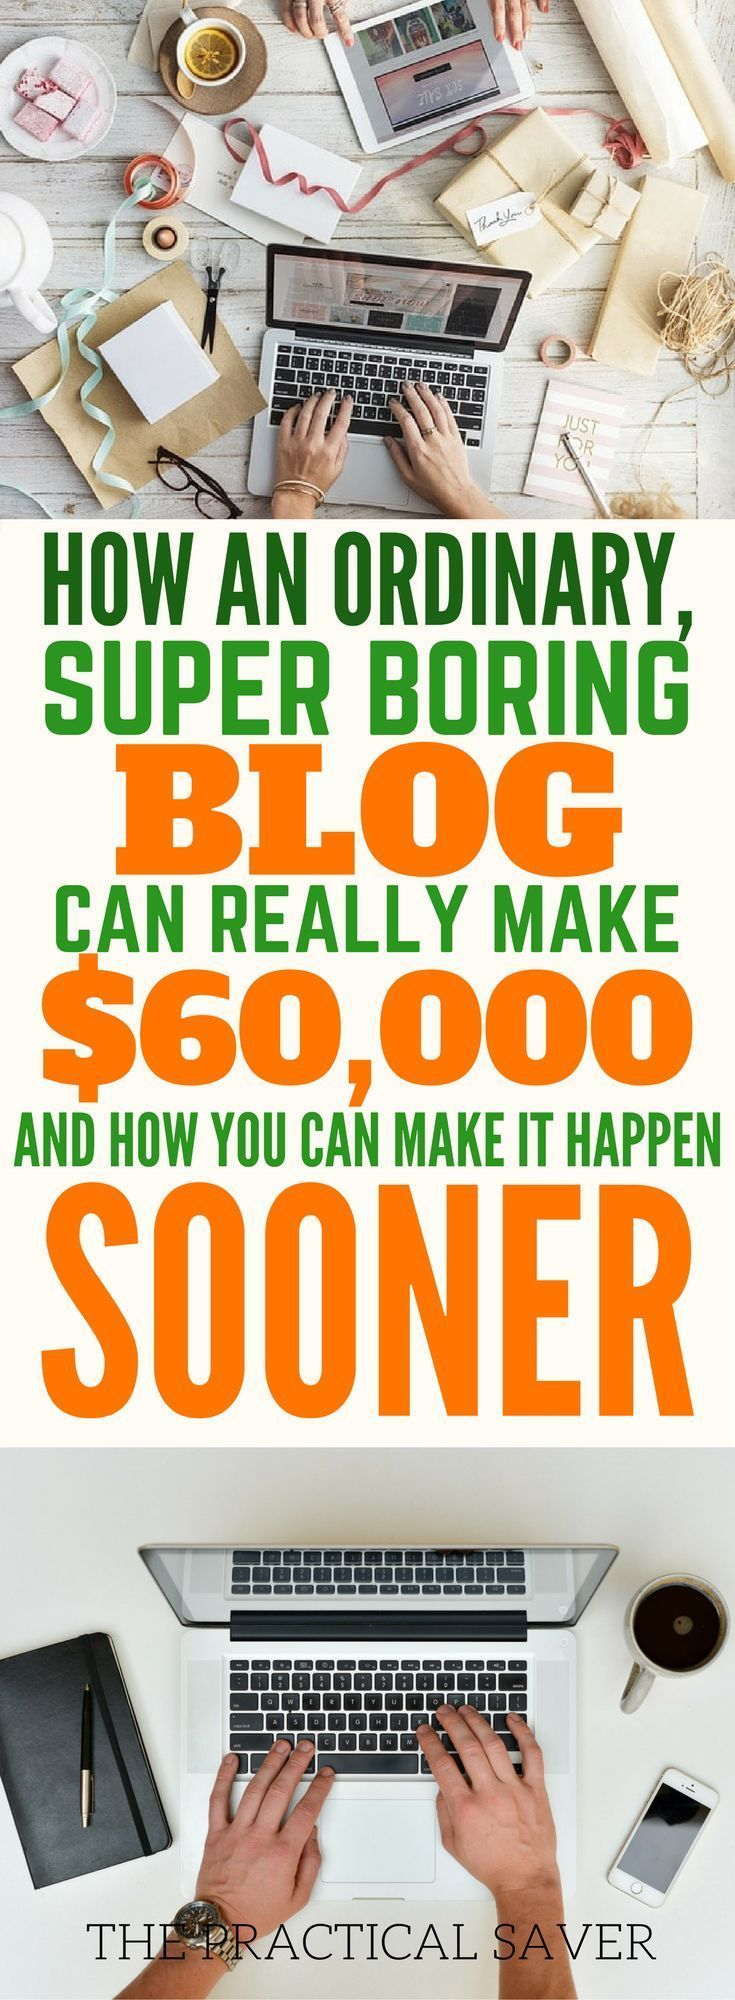 Looking for side hustle tips or passive income ideas? I have made over $60,000 with blogging. Blogging helps me earn extra money online and save extra money. I feel like I have work from job or part time jobs residual income. If you are looking for blogging tips, entrepreneur ideas, or want to be blogging for money, then, this post is for you. Definitely pinning! #howtostartablog #startablog #makemoneyblogging #easybloggingguide #easyblog #blog #sidehustlesuccess #sidehustle #sidehustlejobs